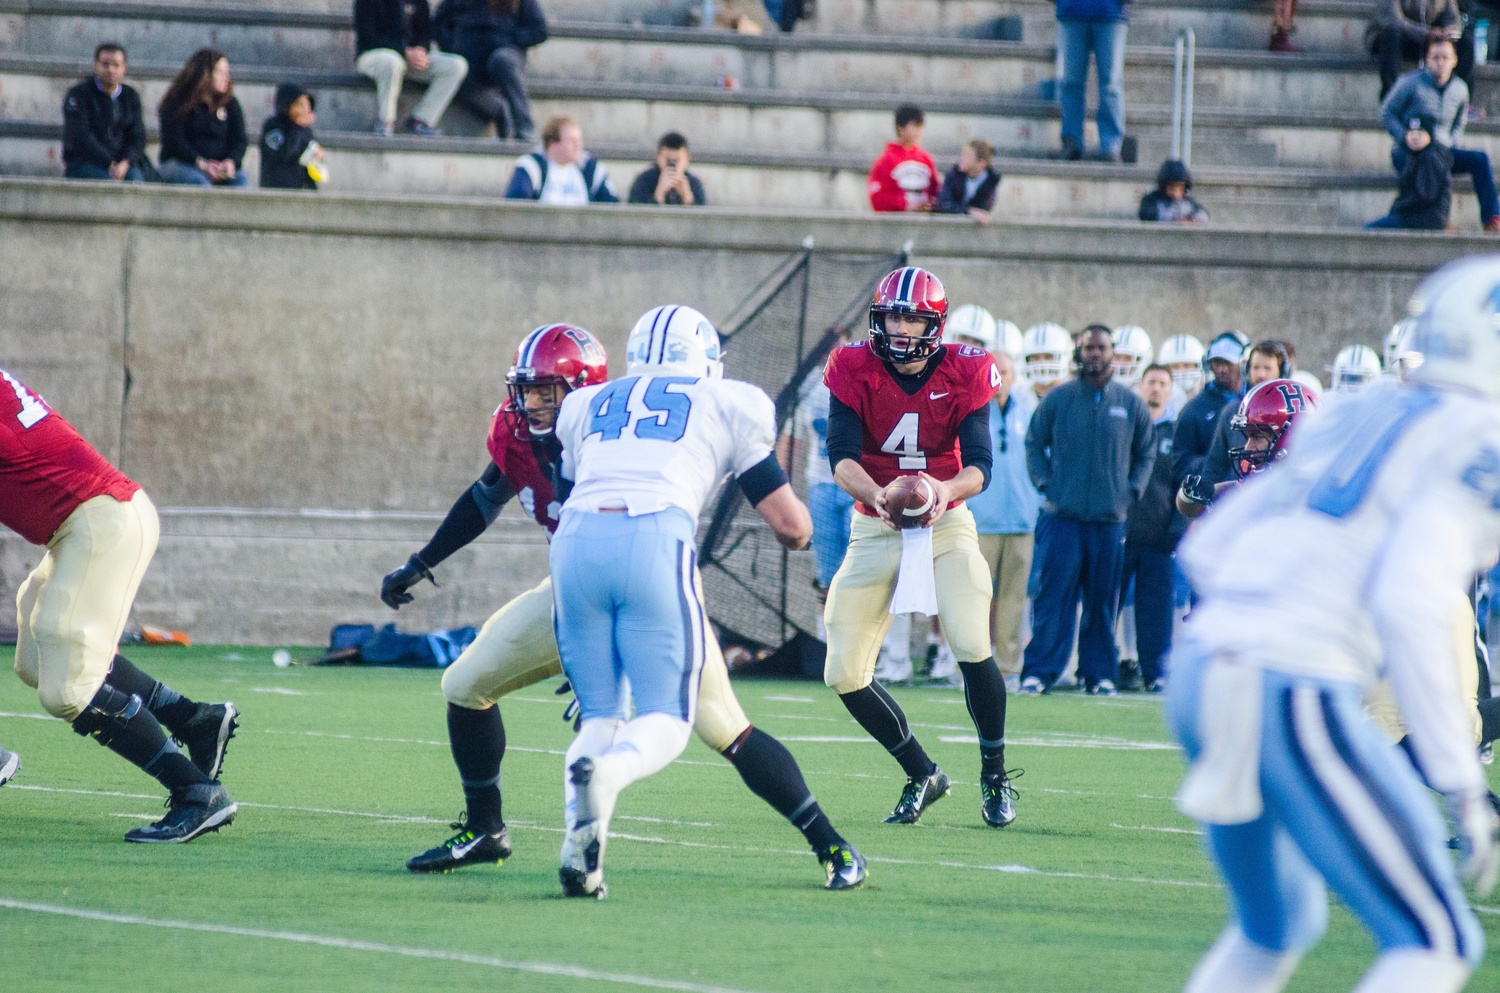 Harvard junior quarterback Joe Viviano, pictured above in Nov. 14, 2014 action against Columbia, will not play the rest of the season, according to Harvard coach Tim Murphy. Viviano played sparingly his first two years with the team but was locked in a battle for the starting job with senior Scott Hosch.